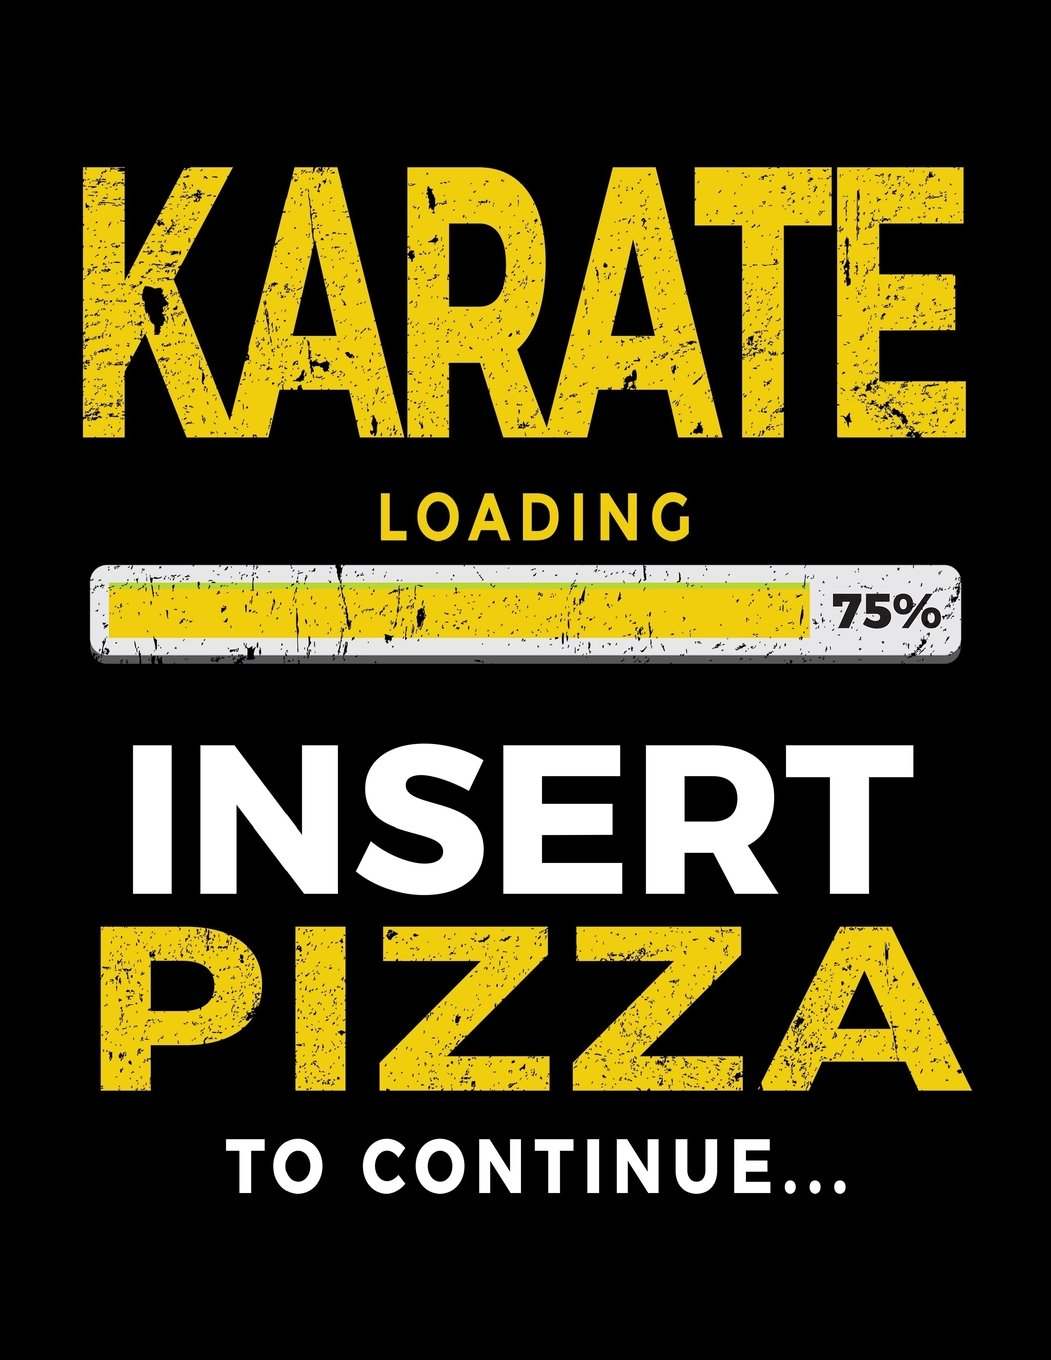 Karate Loading 75% Insert Pizza To Continue: Blank Lined Journal 8.5 x 11 - Funny Gift For Karate Students V1